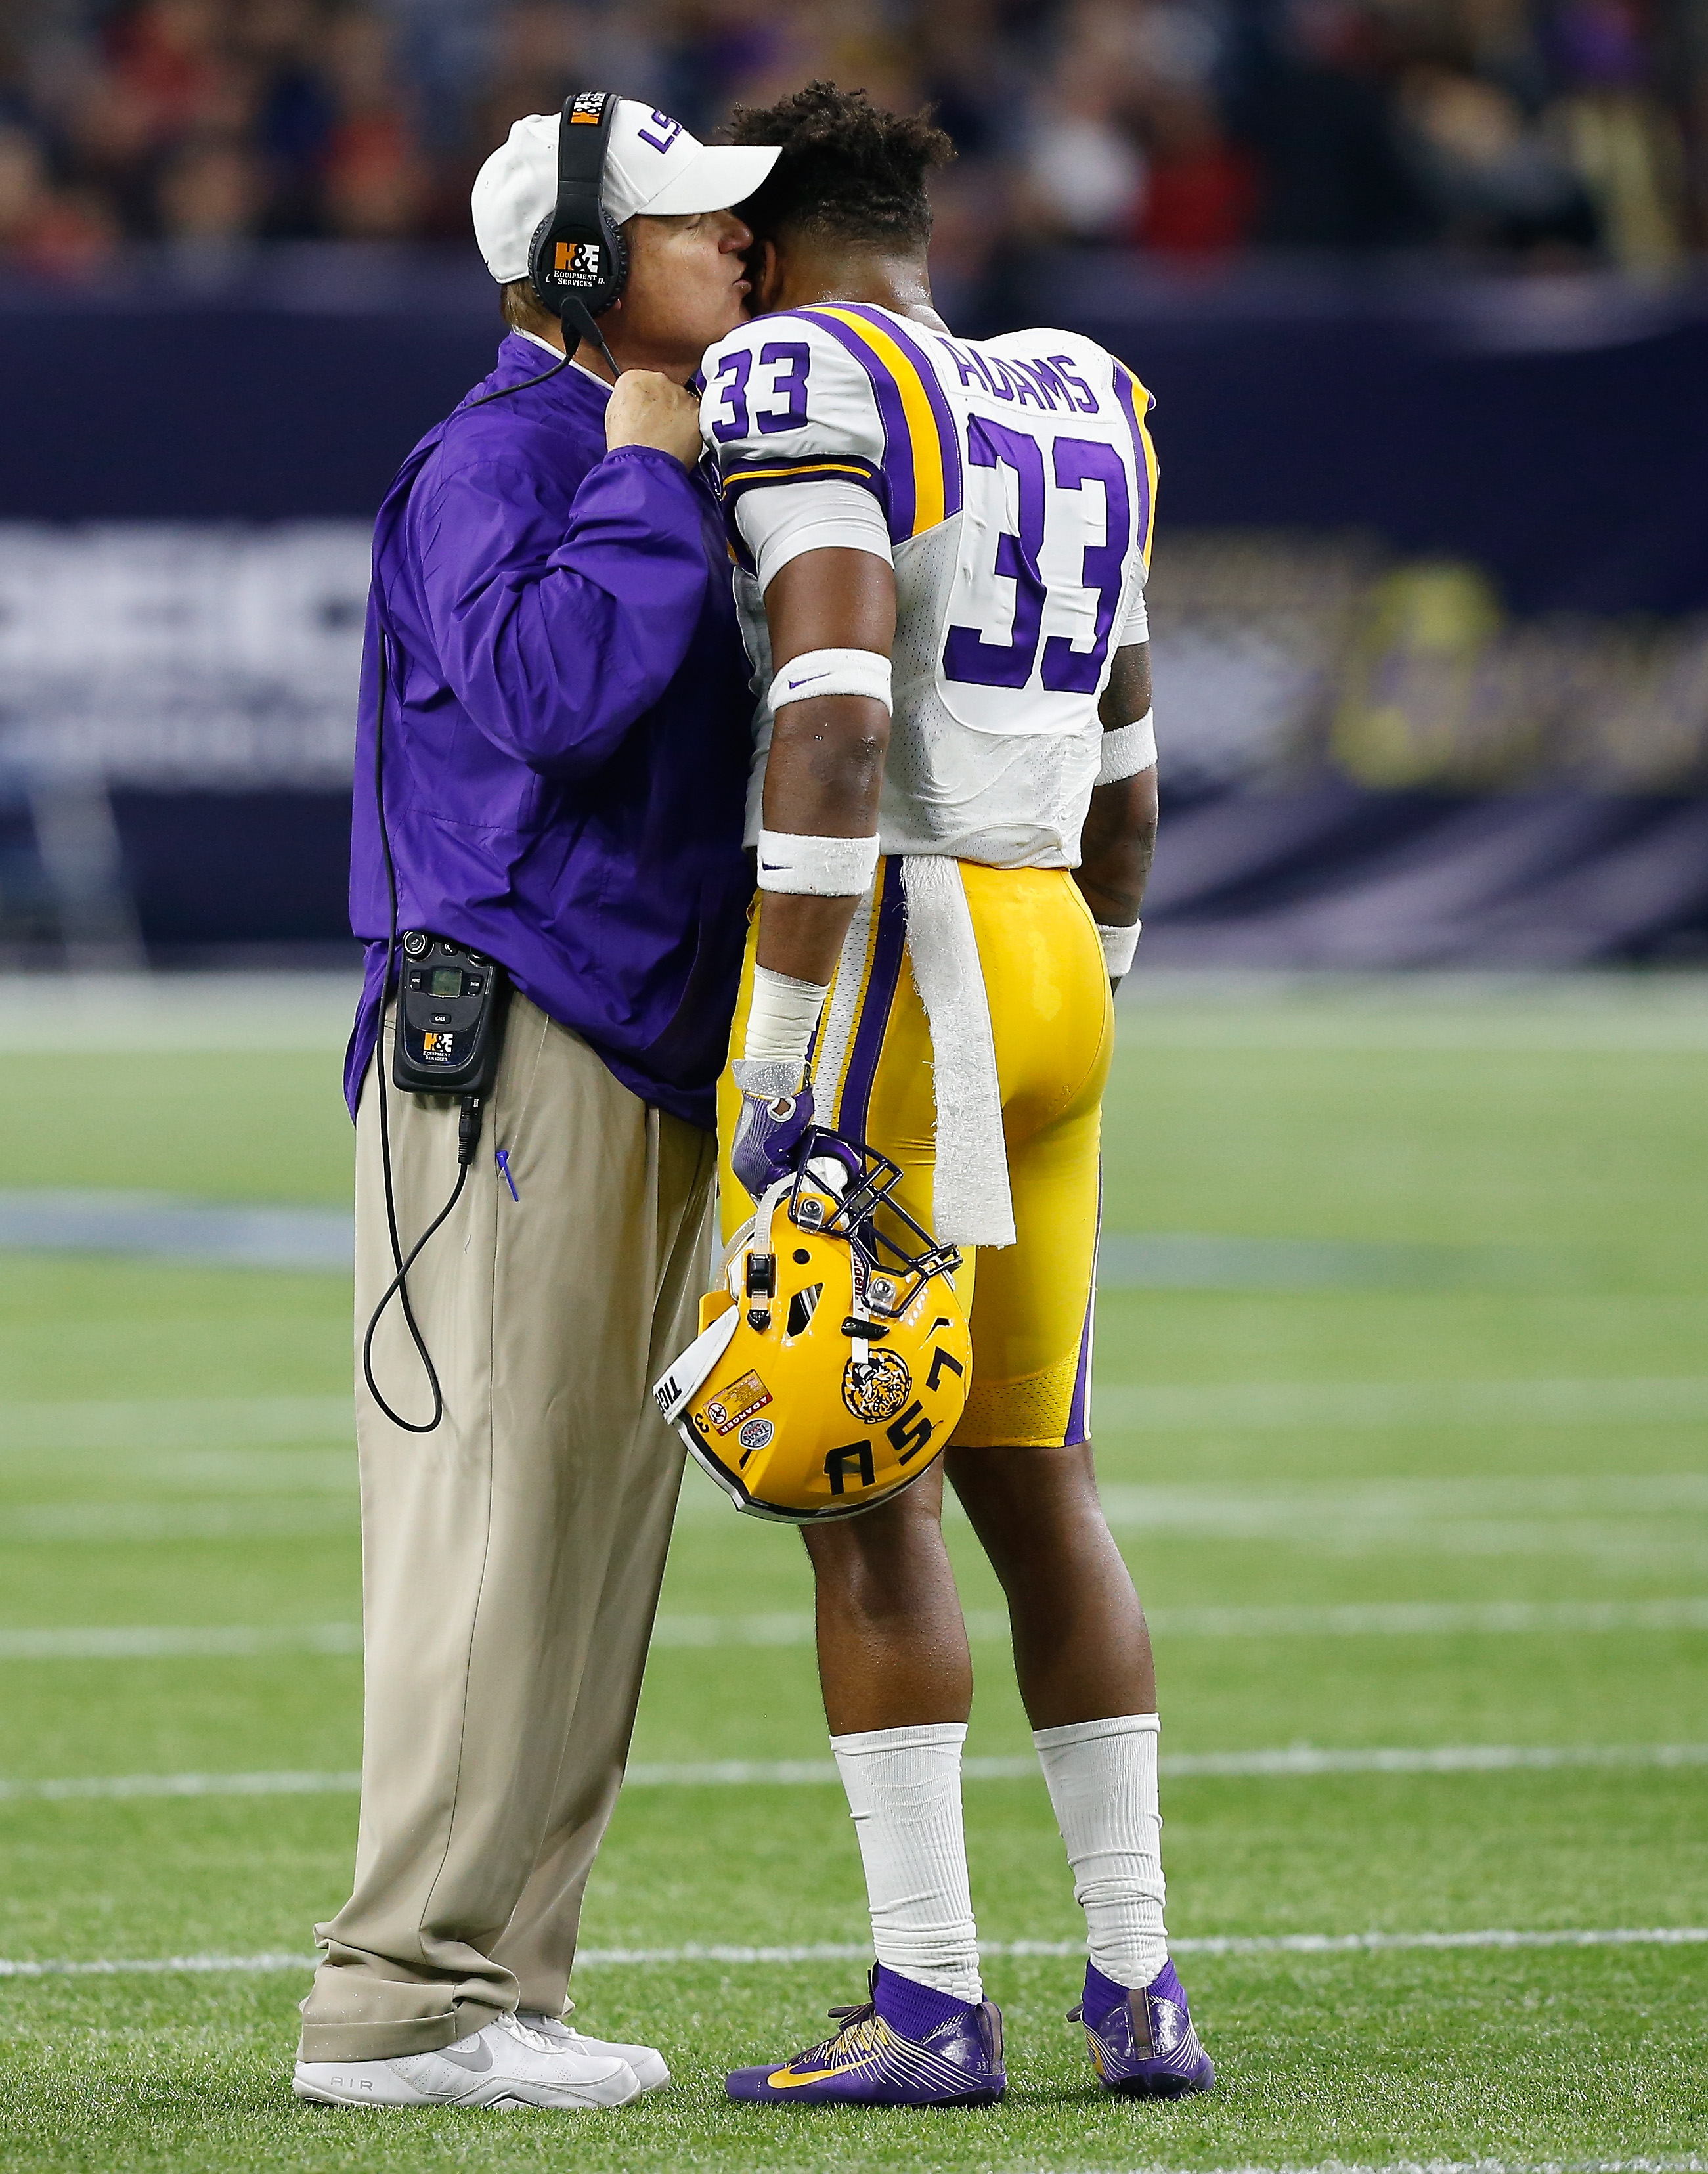 LSU coach Les Miles talks to safety Jamal Adams (33) during the first half against Texas Tech in the Texas Bowl NCAA college football game Tuesday, Dec. 29, 2015, in Houston. (AP Photo/Bob Levey)